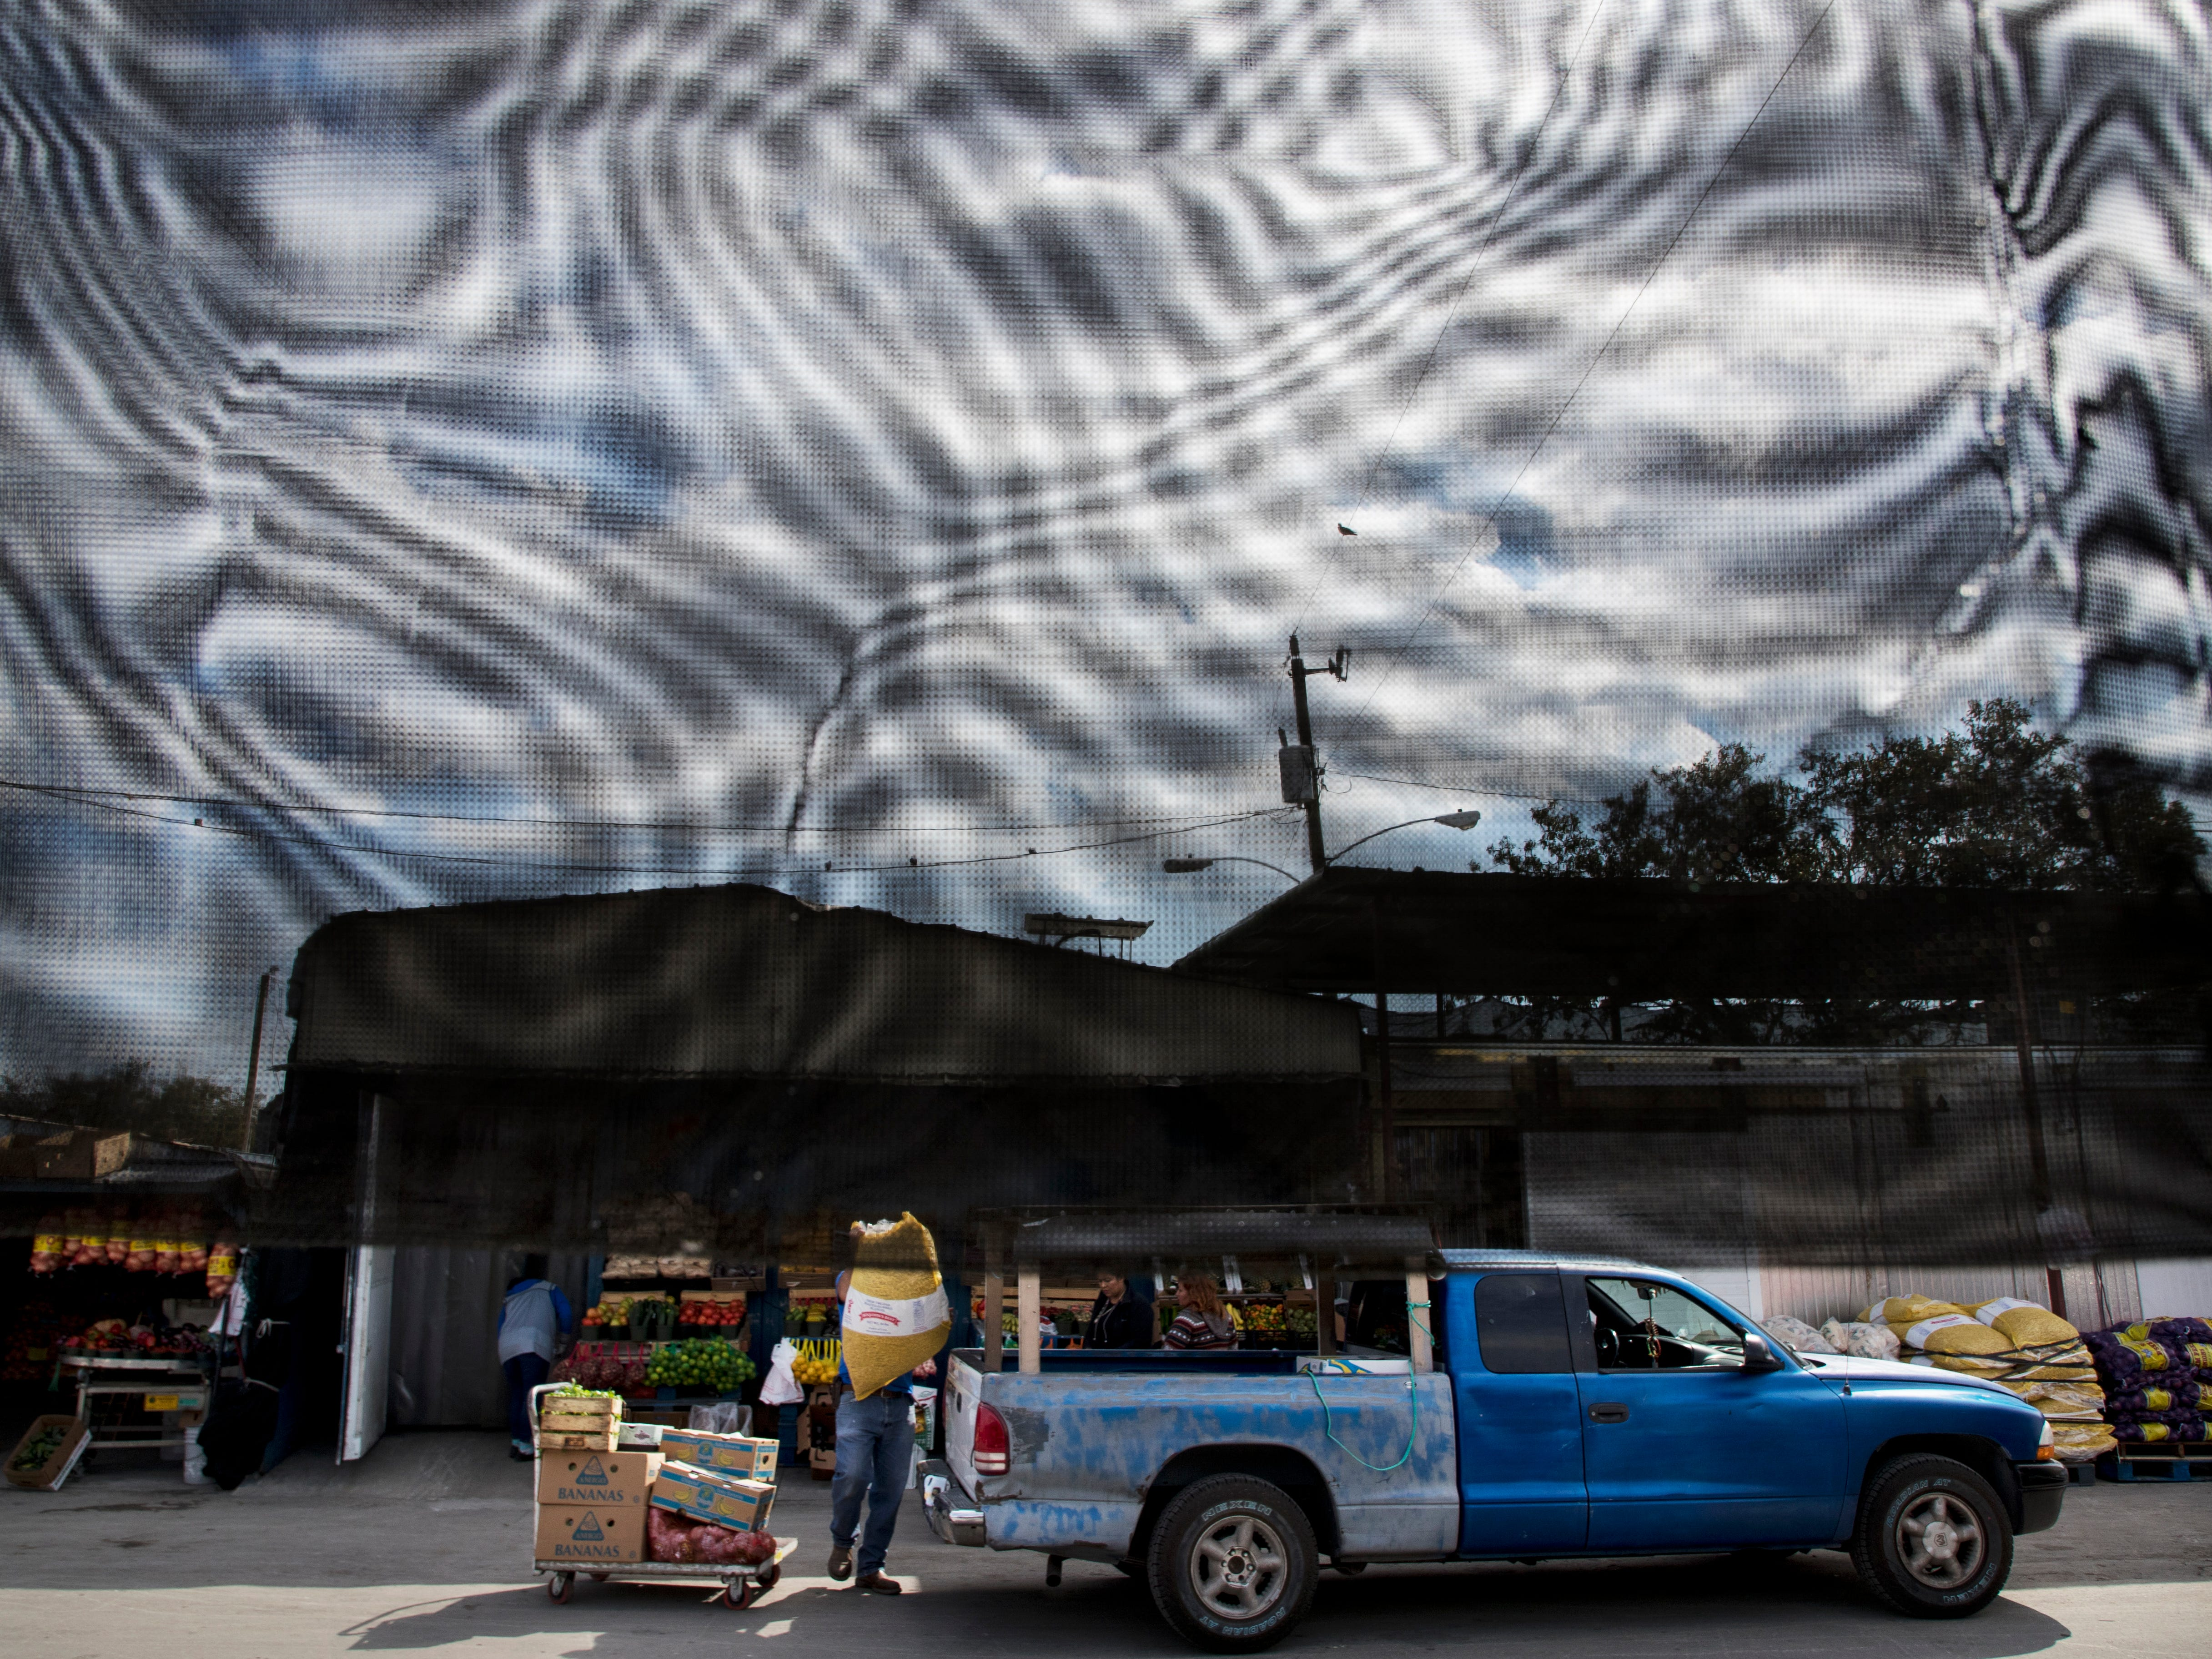 Produce is transferred to an awaiting customer at the Farmer's Market in Immokalee on Thursday 1/31/2019.